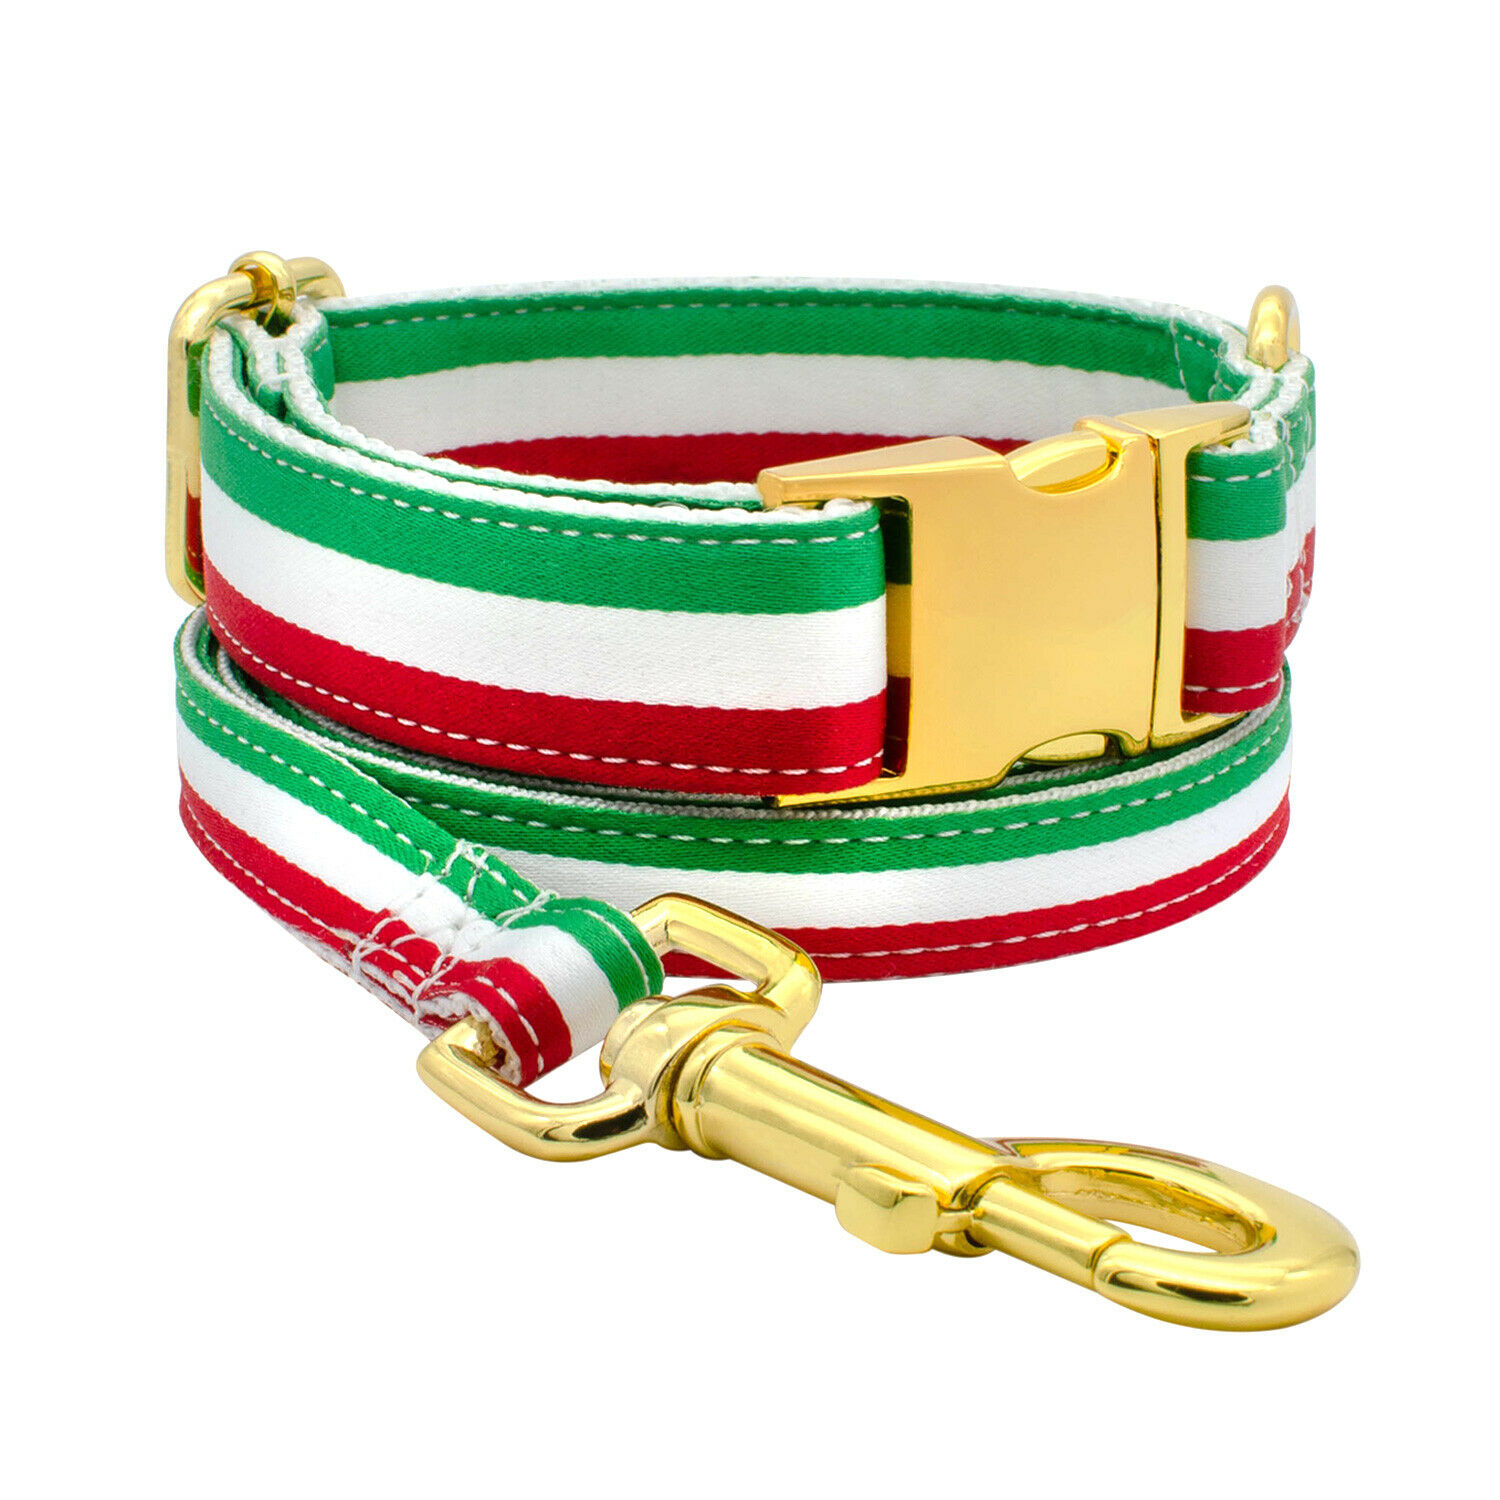 Italian  Flag Dog Collar Leash Set Adjustable Grün Weiß rot Gold Hardware